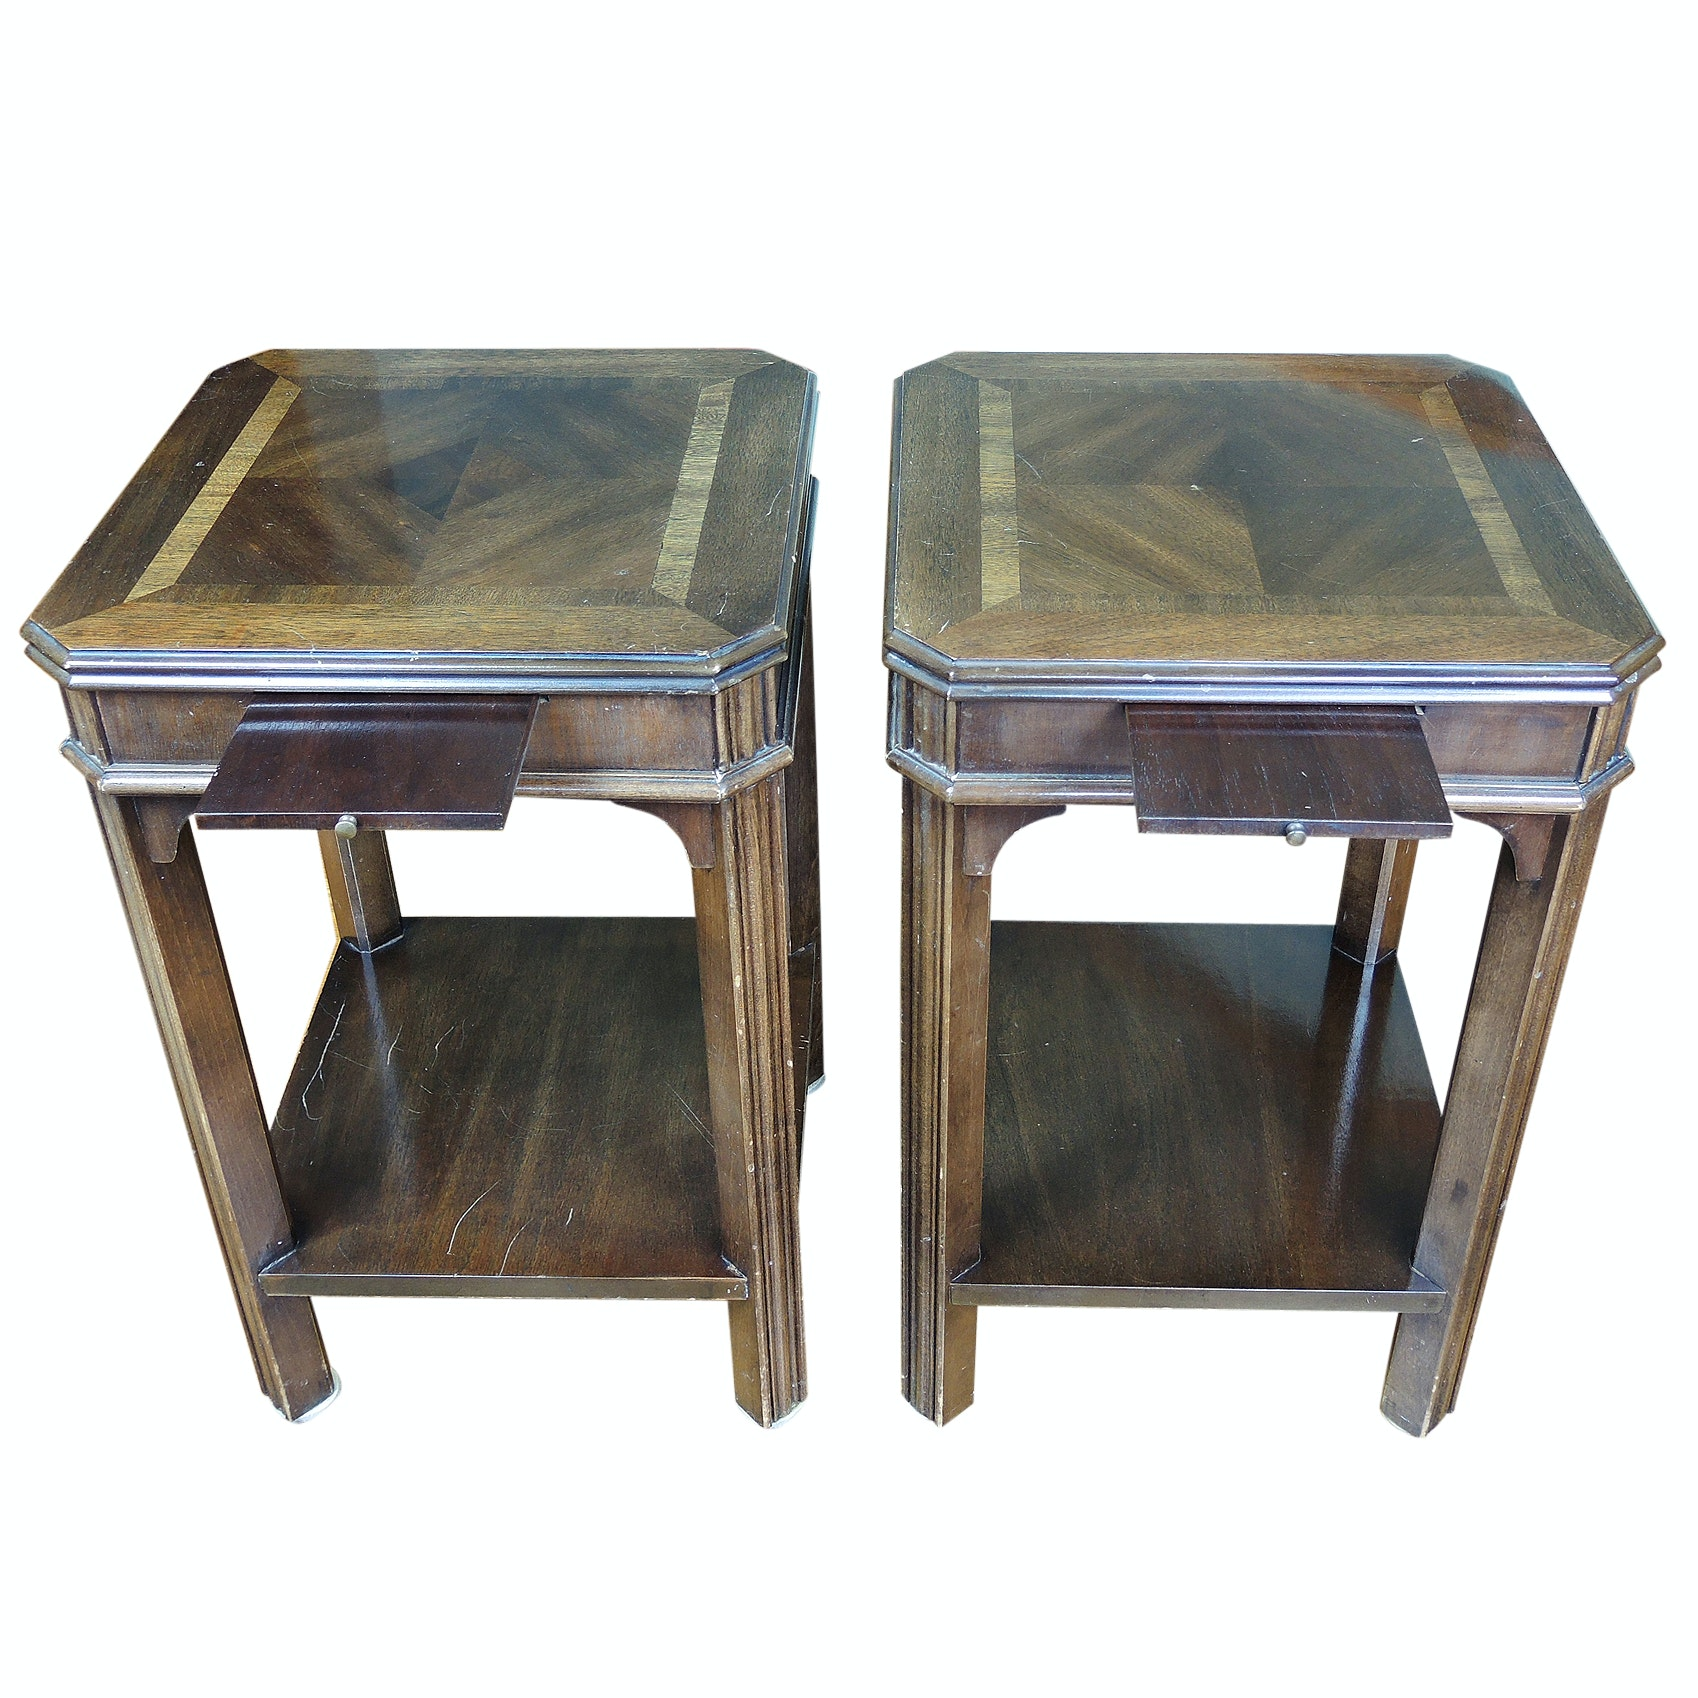 Walnut Side Tables with Sliding Panels by Lane, Late 20th Century